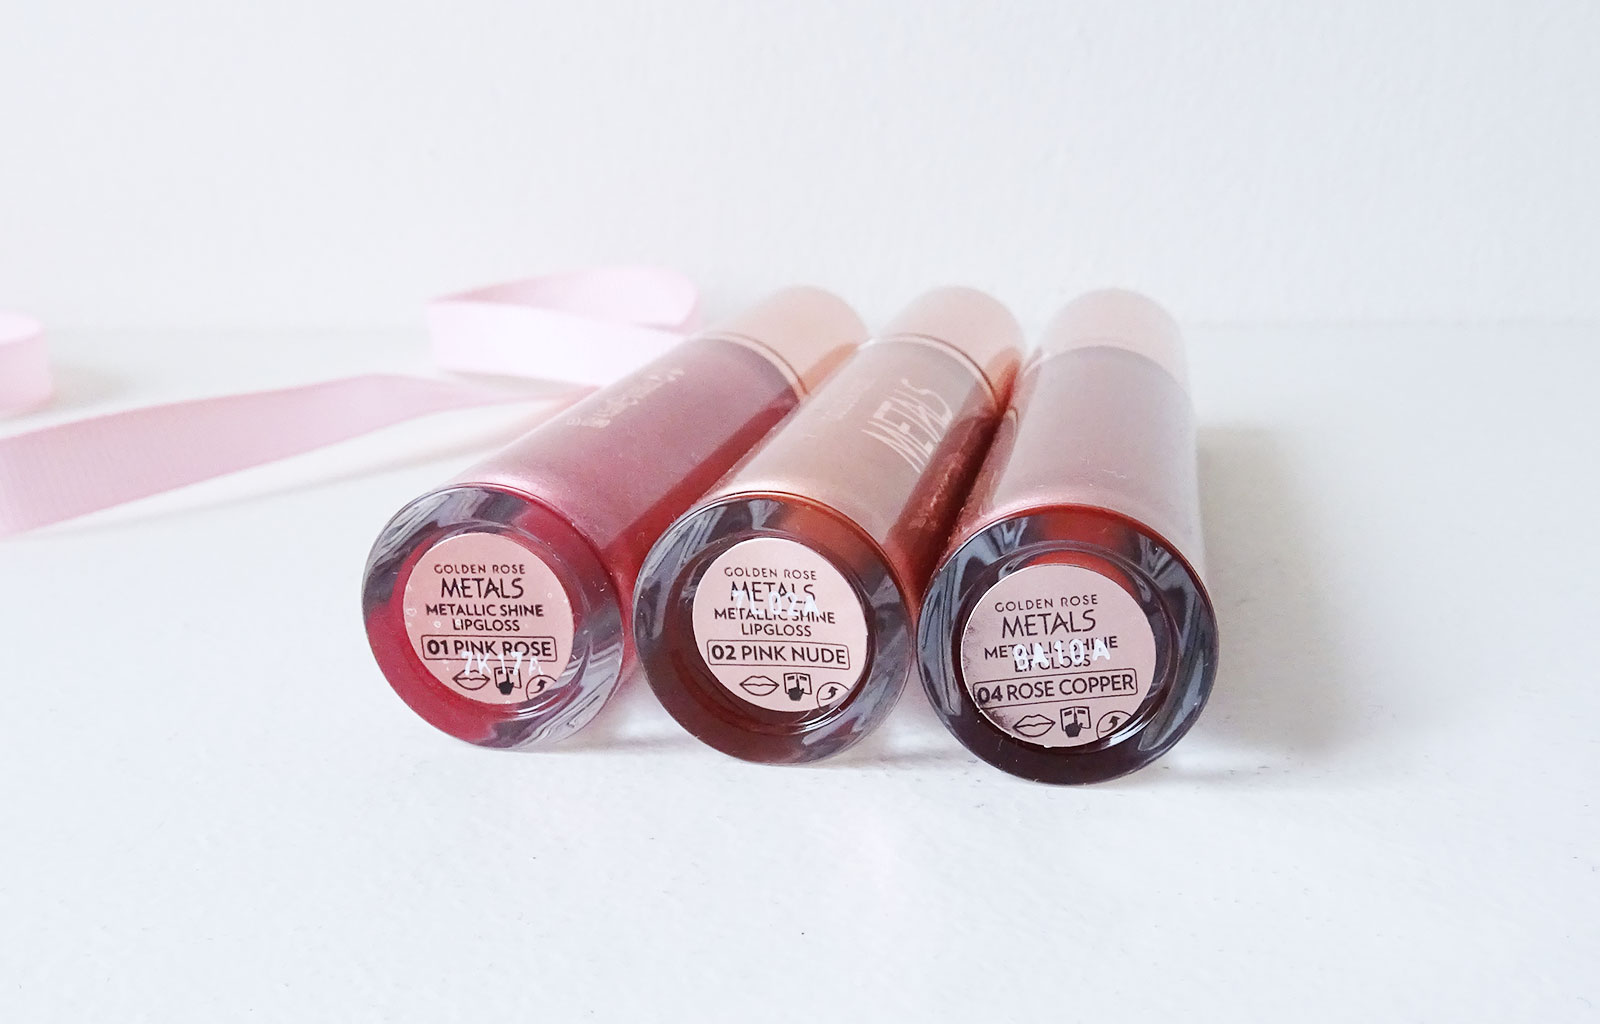 Metals Metallic Shine Lip gloss Golden Rose